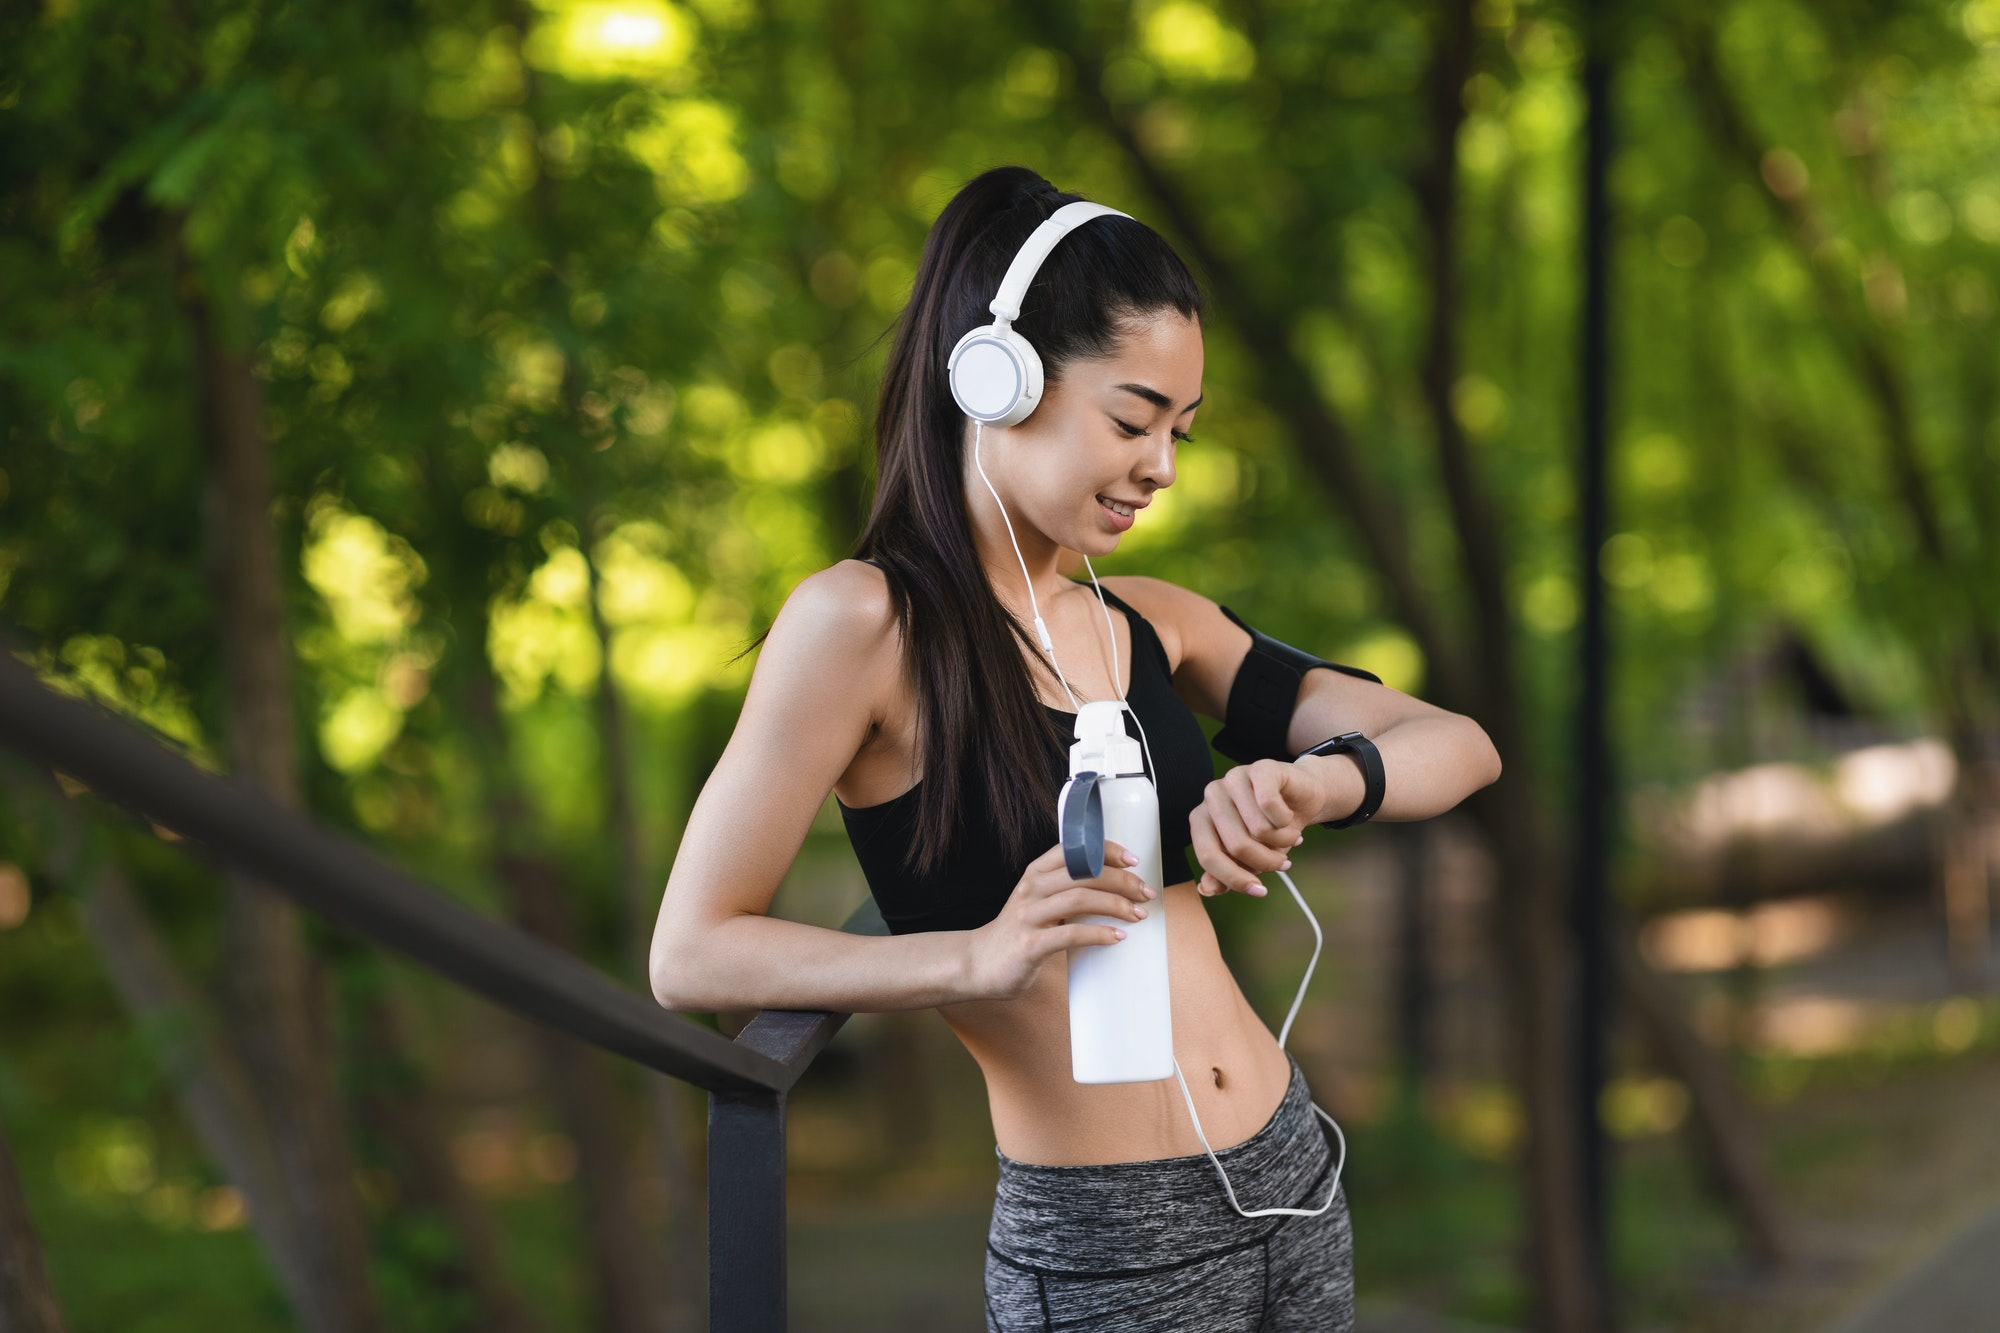 Sport Gadgets. Young Asian Jogger Woman In Headphones Looking At Smartwatch